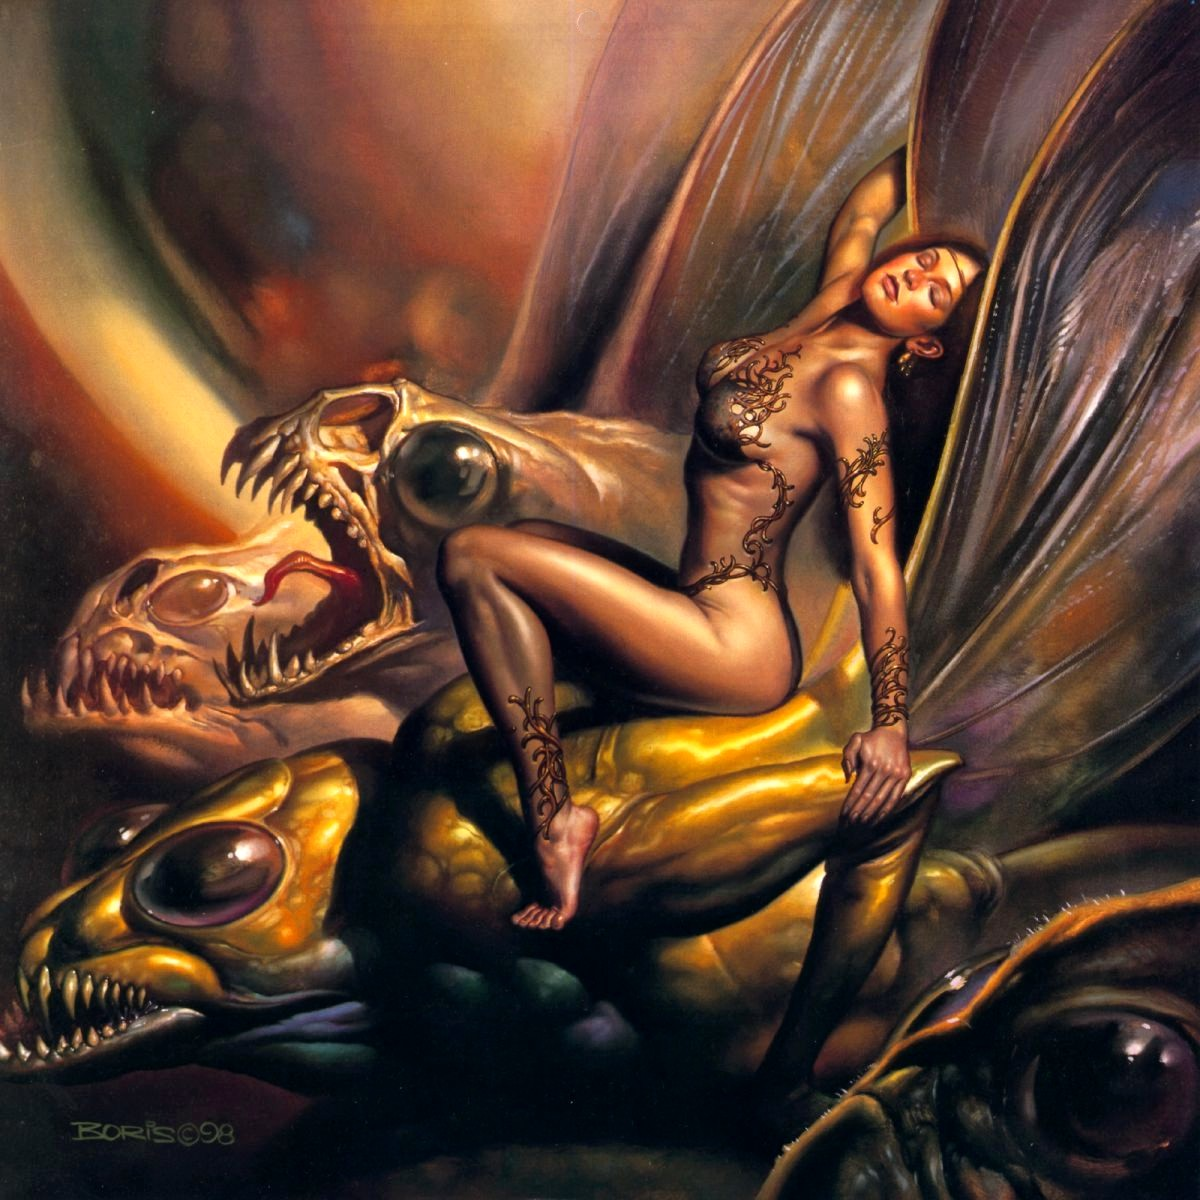 from Omar boris vallejo gay porn